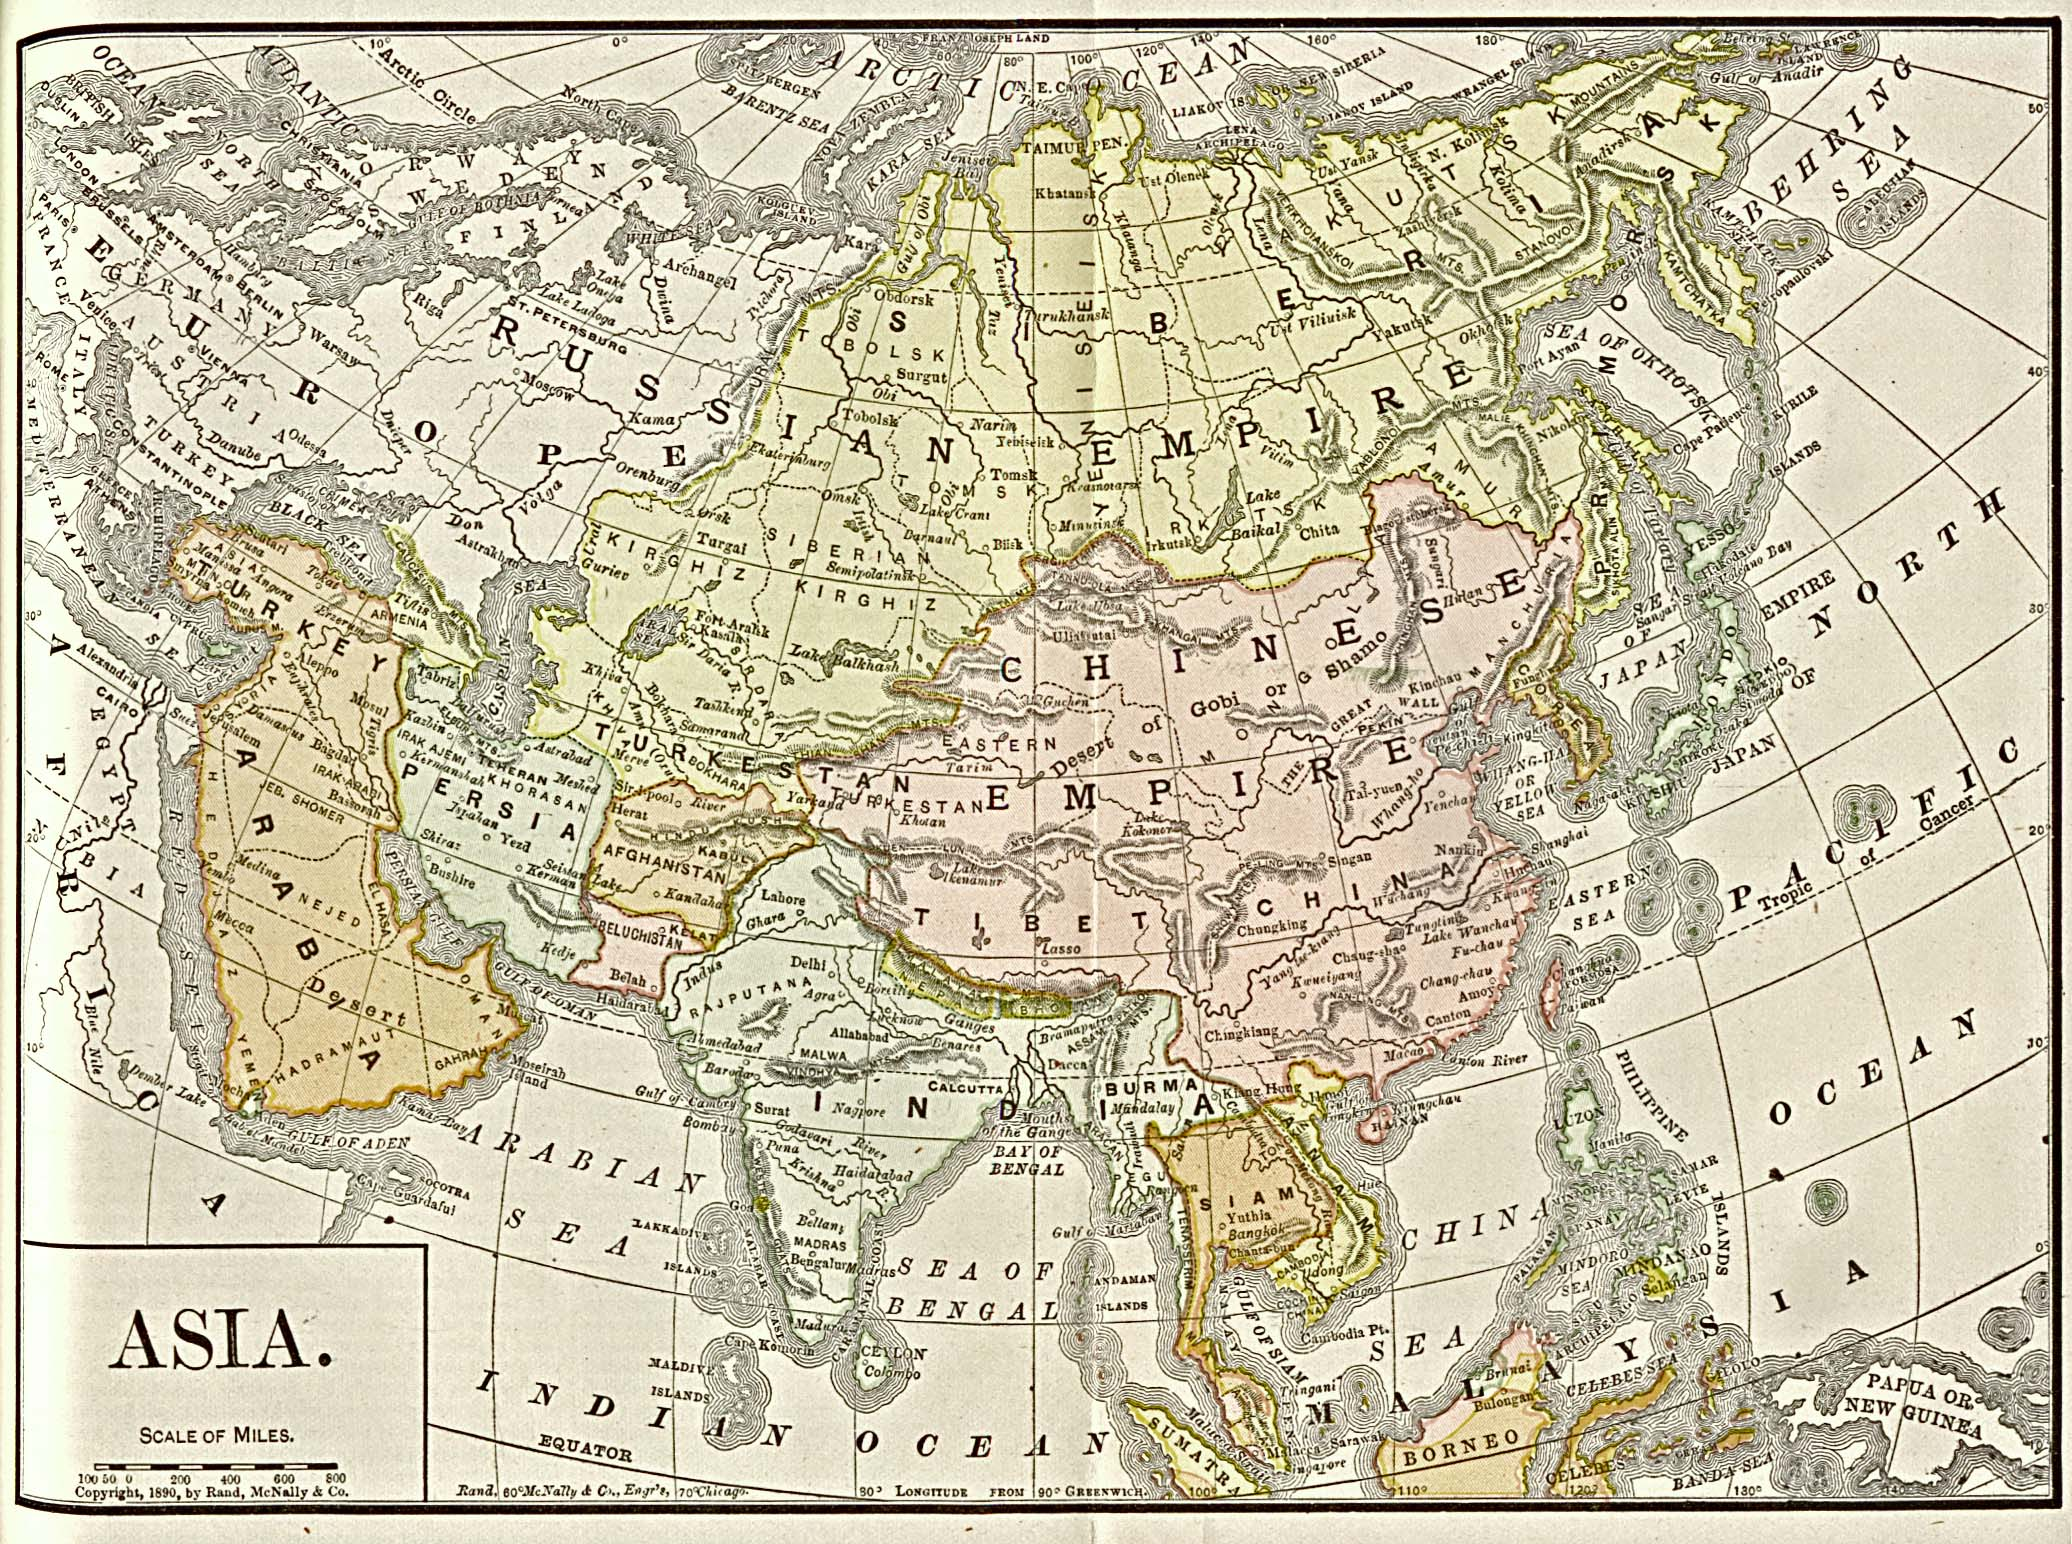 http://upload.wikimedia.org/wikipedia/commons/3/3b/Asia_1892_amer_ency_brit.jpg